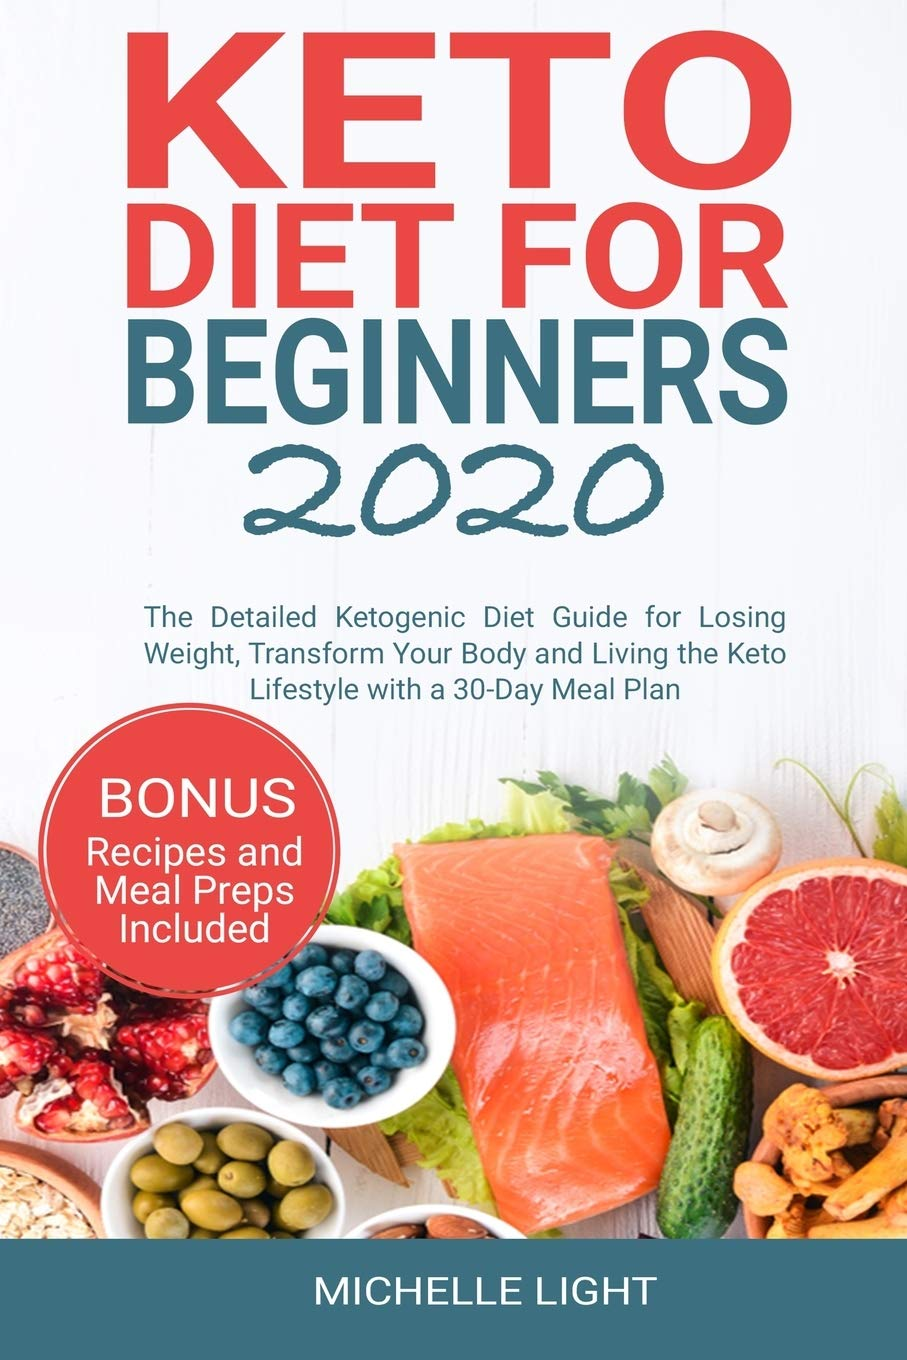 Keto Diet for Beginners 2020: The Detailed Ketogenic Diet Guide for Losing Weight, Transform Your Body and Living the Keto Lifestyle with a 30-Day Meal Plan (Bonus Recipes and Meal Preps Included) 1